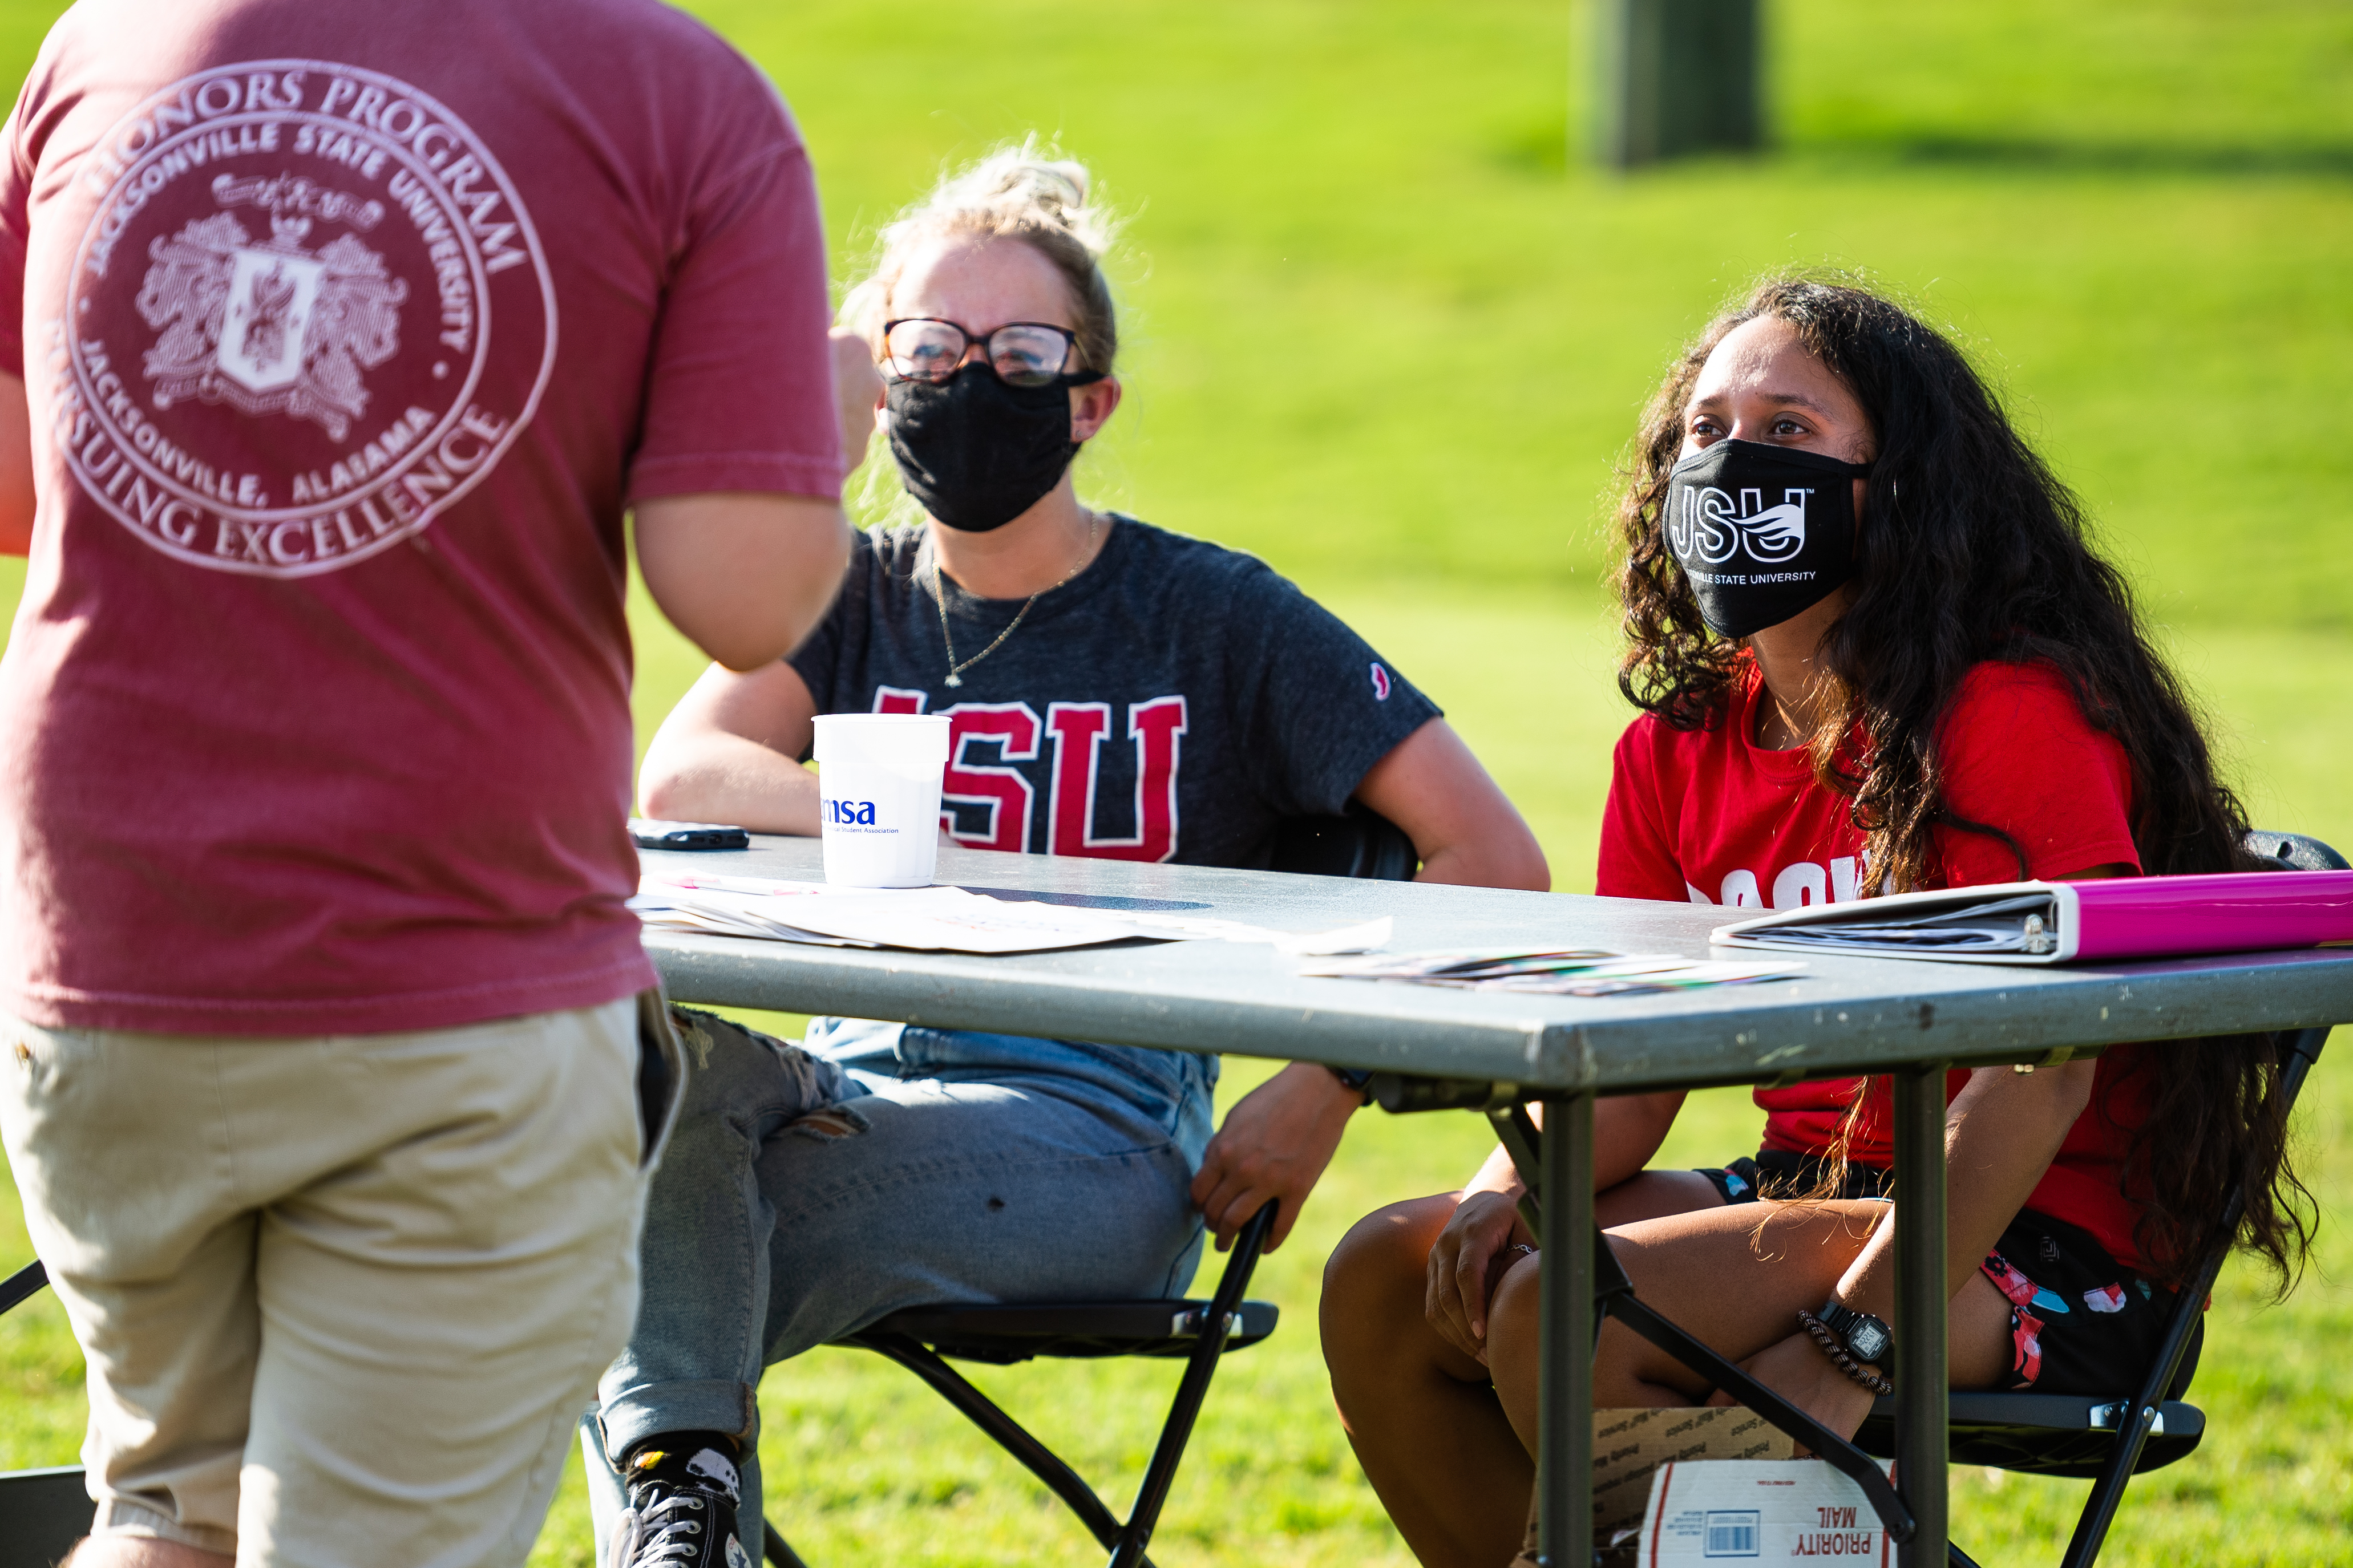 Students converse with one another at a table during JSU's Get on Board Day on Aug. 18. The university announced Wednesday that all in-person student organization events would be suspended for two weeks. (Matt Reynolds/JSU)